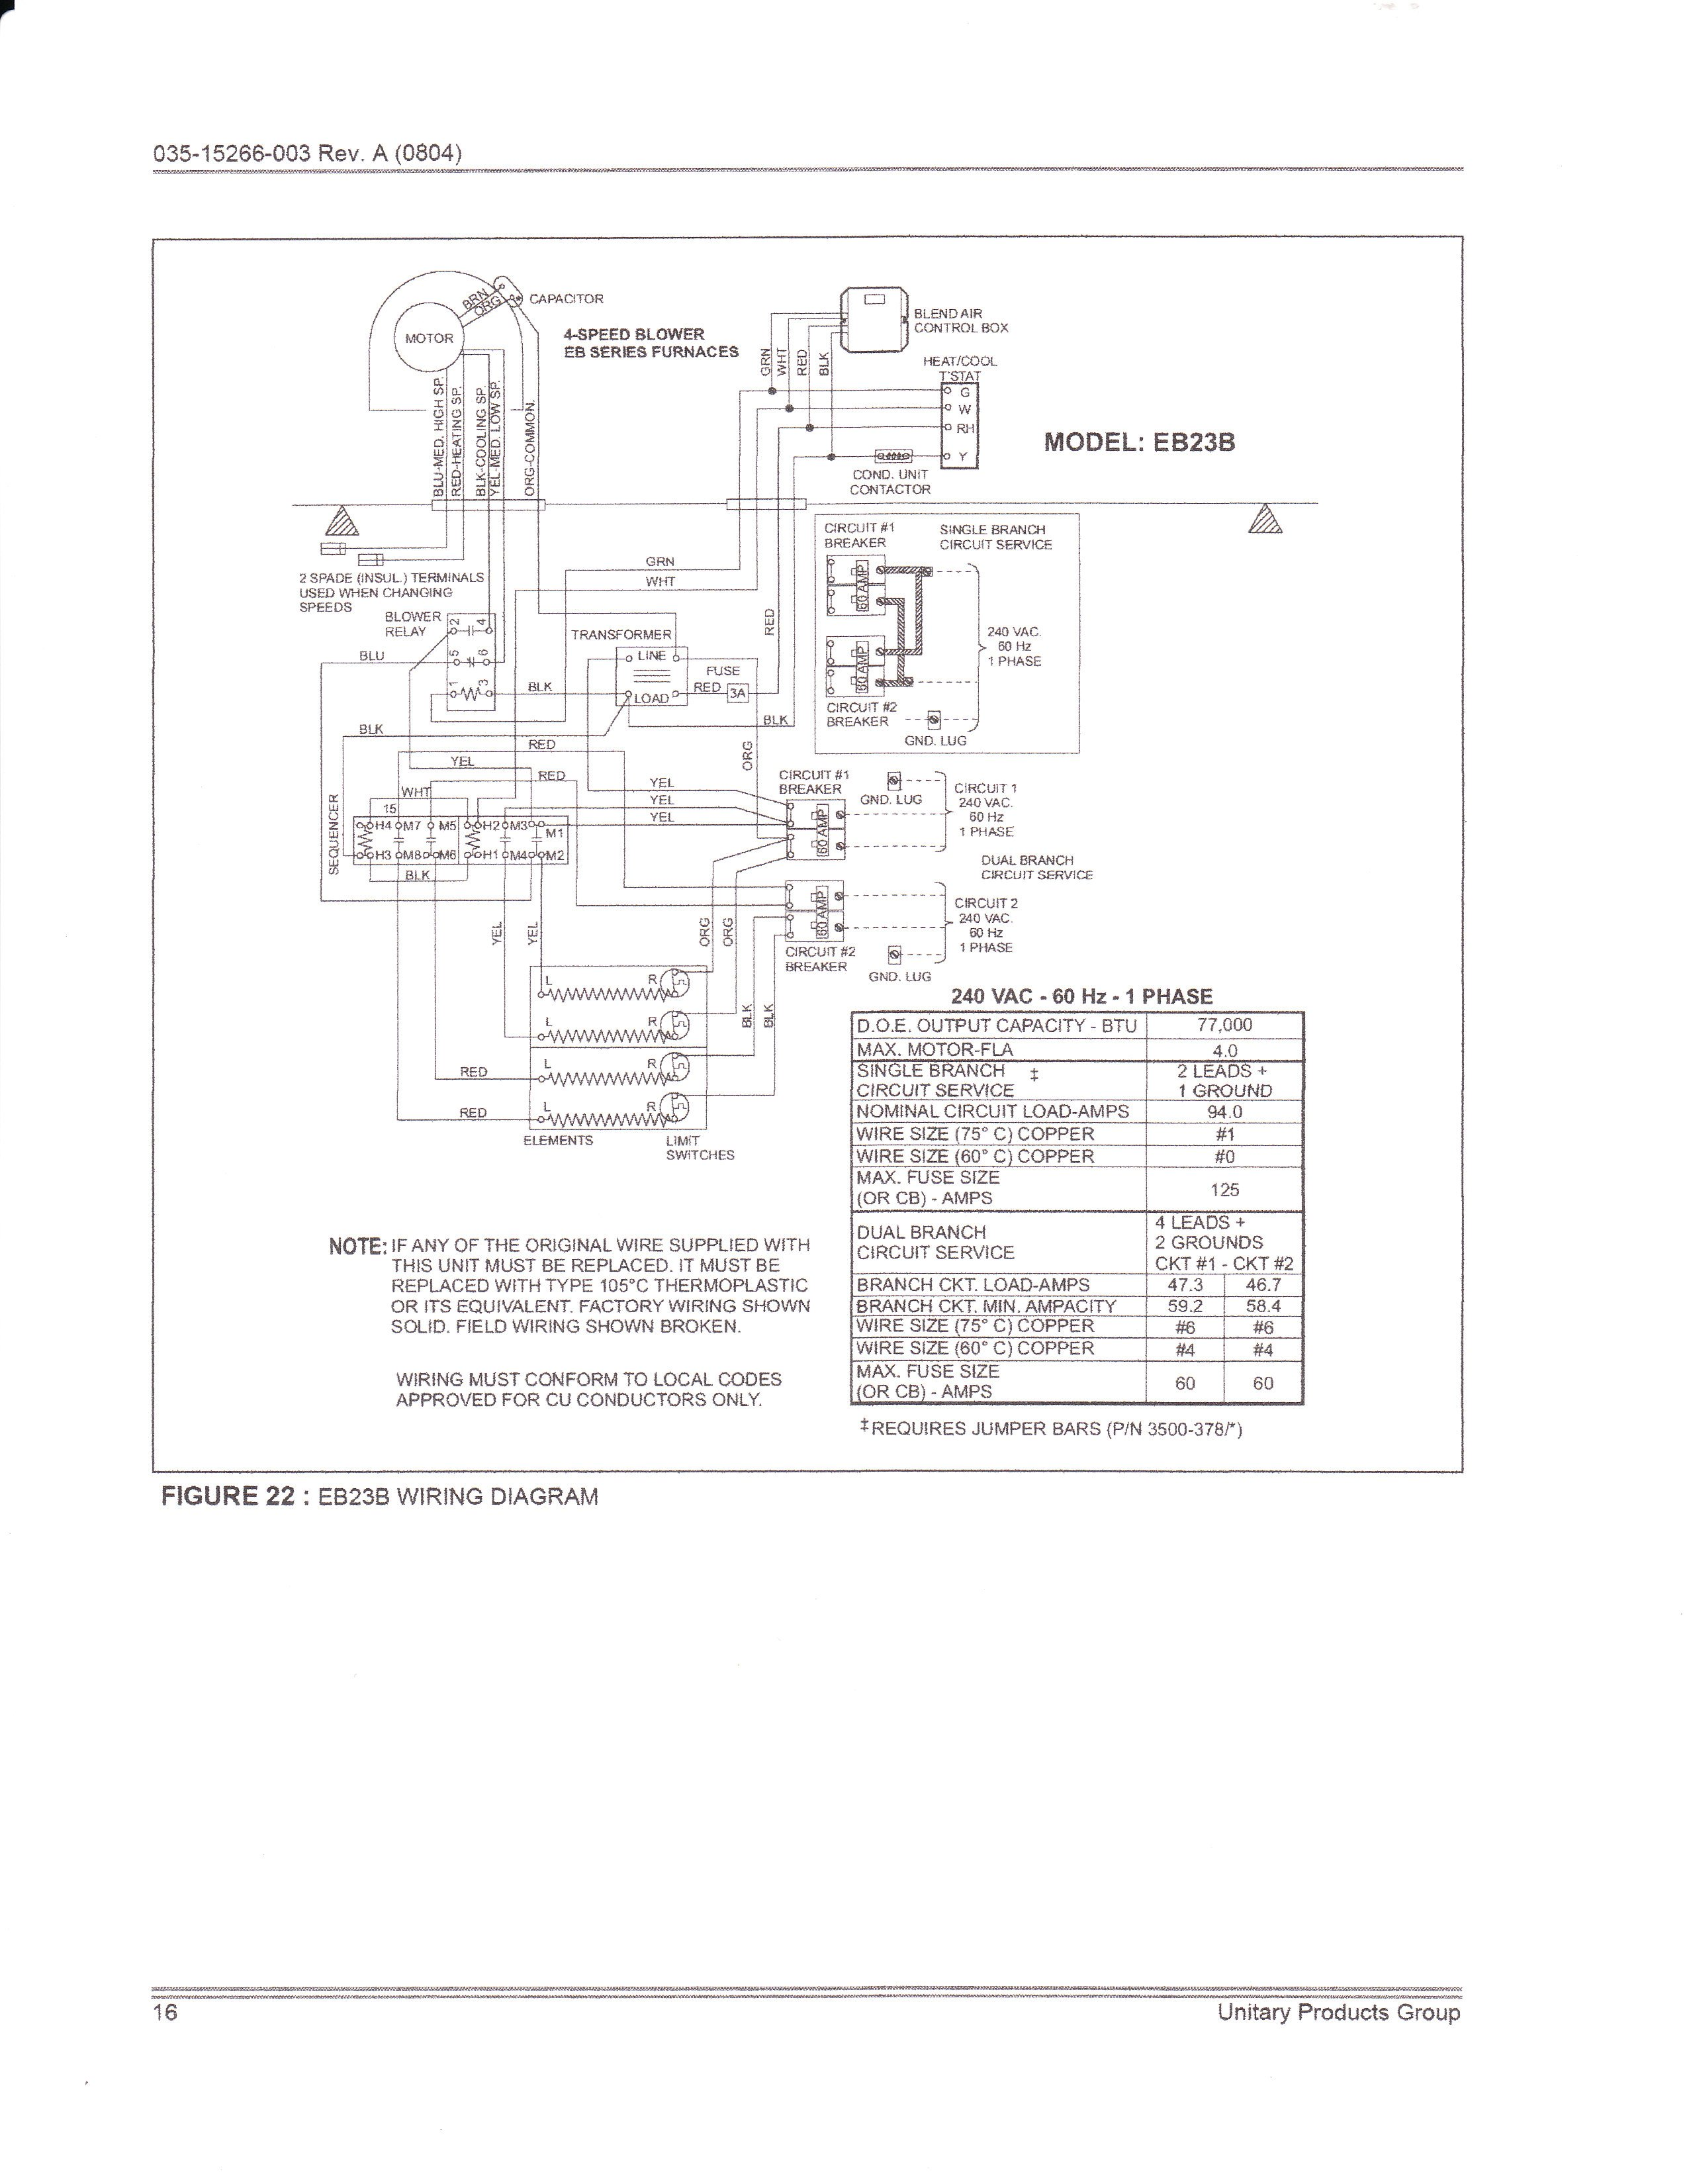 Coleman Evcon Wiring Diagram: Coleman EVCON wiring diagram. Blower runs with no heat. What to do?,Design